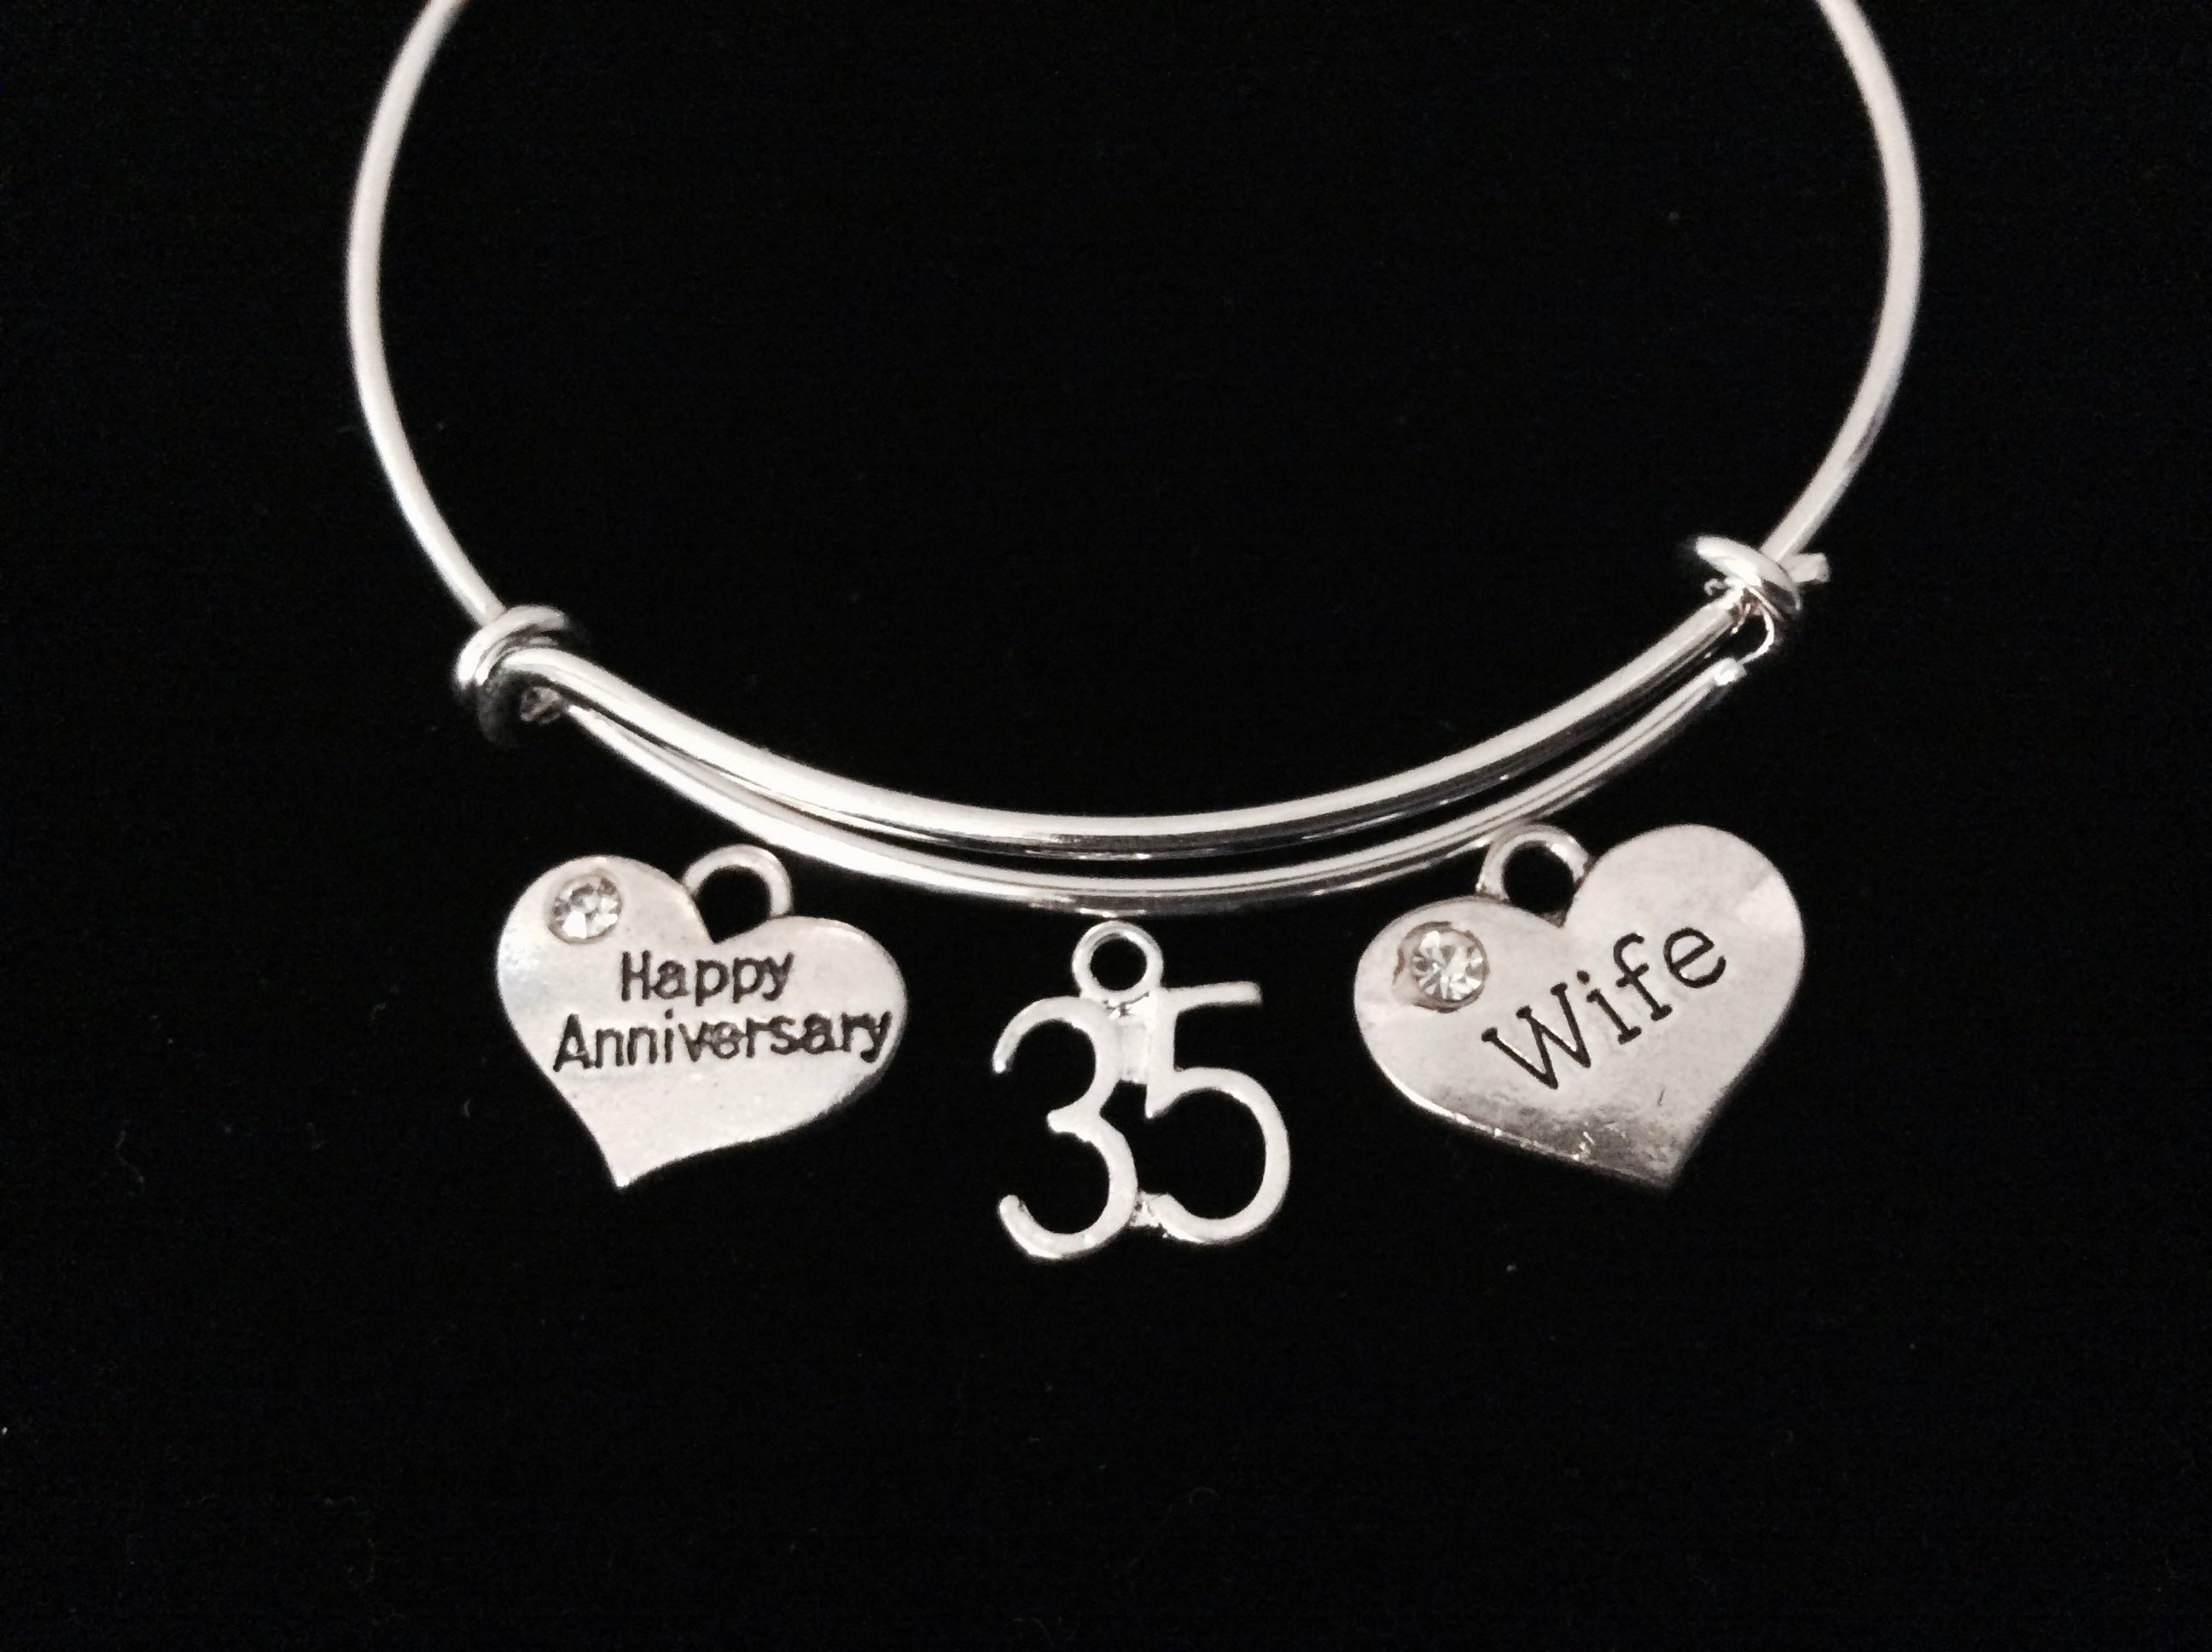 Happy 35th Anniversary Wife Jewelry Silver Expandable Charm Bracelet A - Jules Obsession